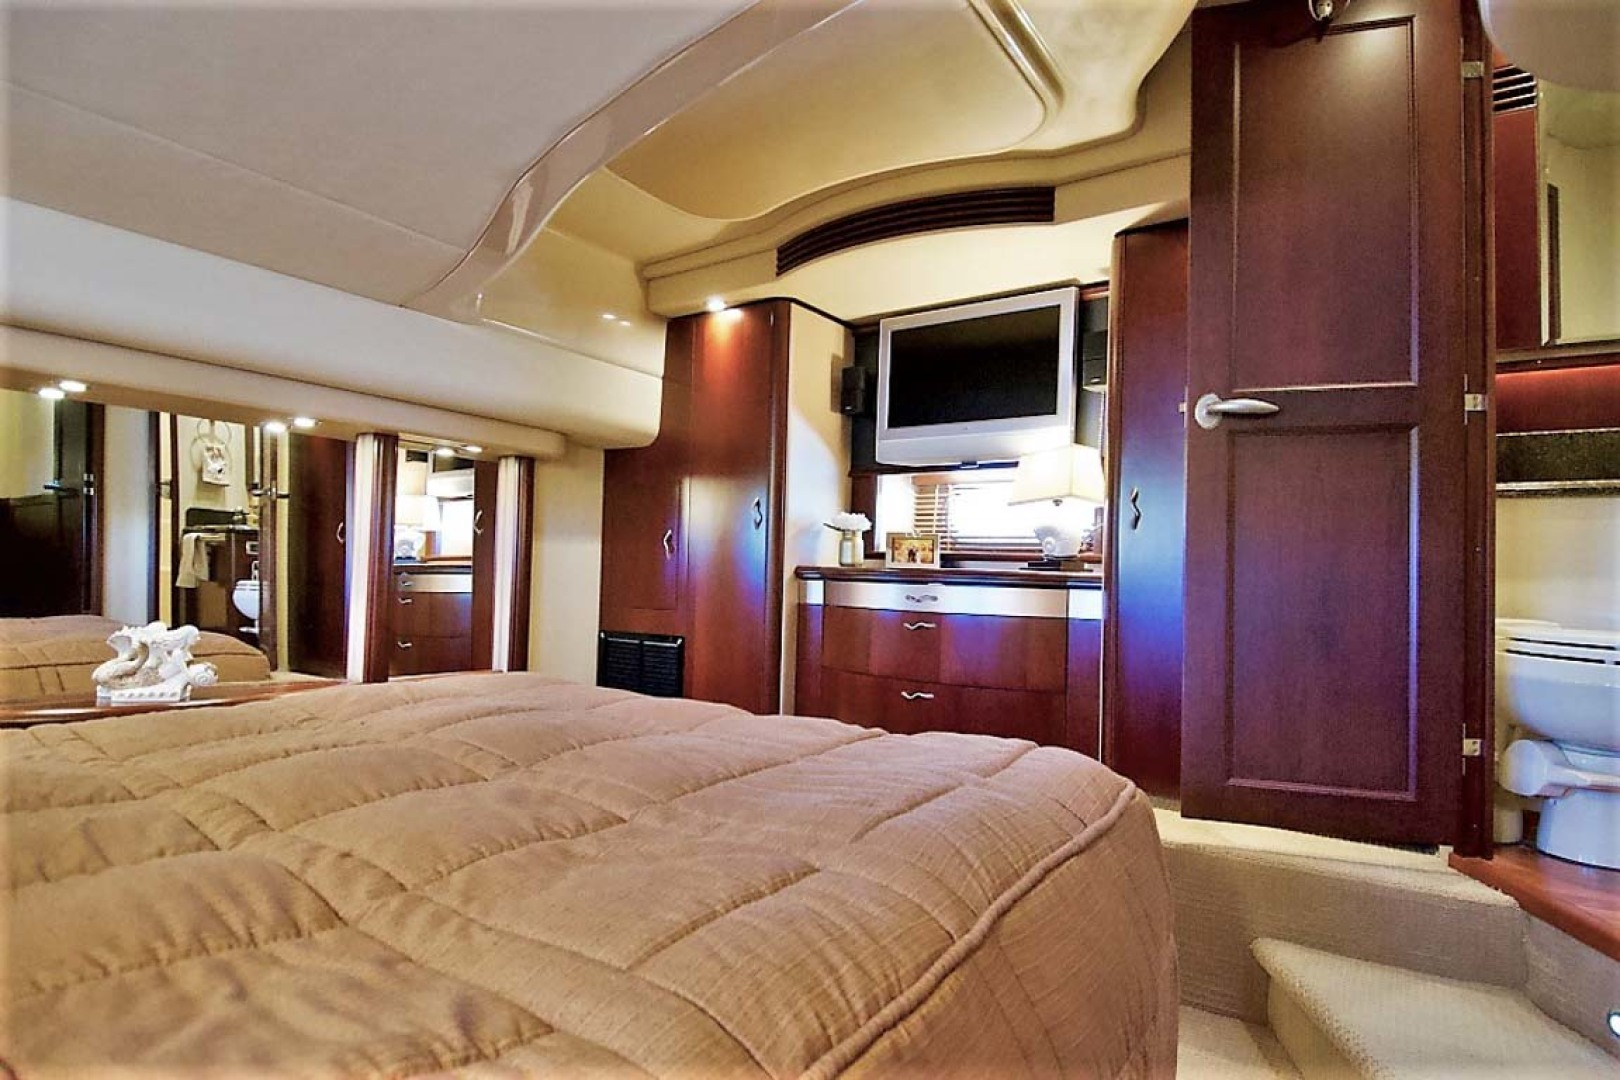 Sea Ray-58 Sedan Bridge 2006-Livin Large IV Jupiter-Florida-United States-Master Stateroom-1103686 | Thumbnail